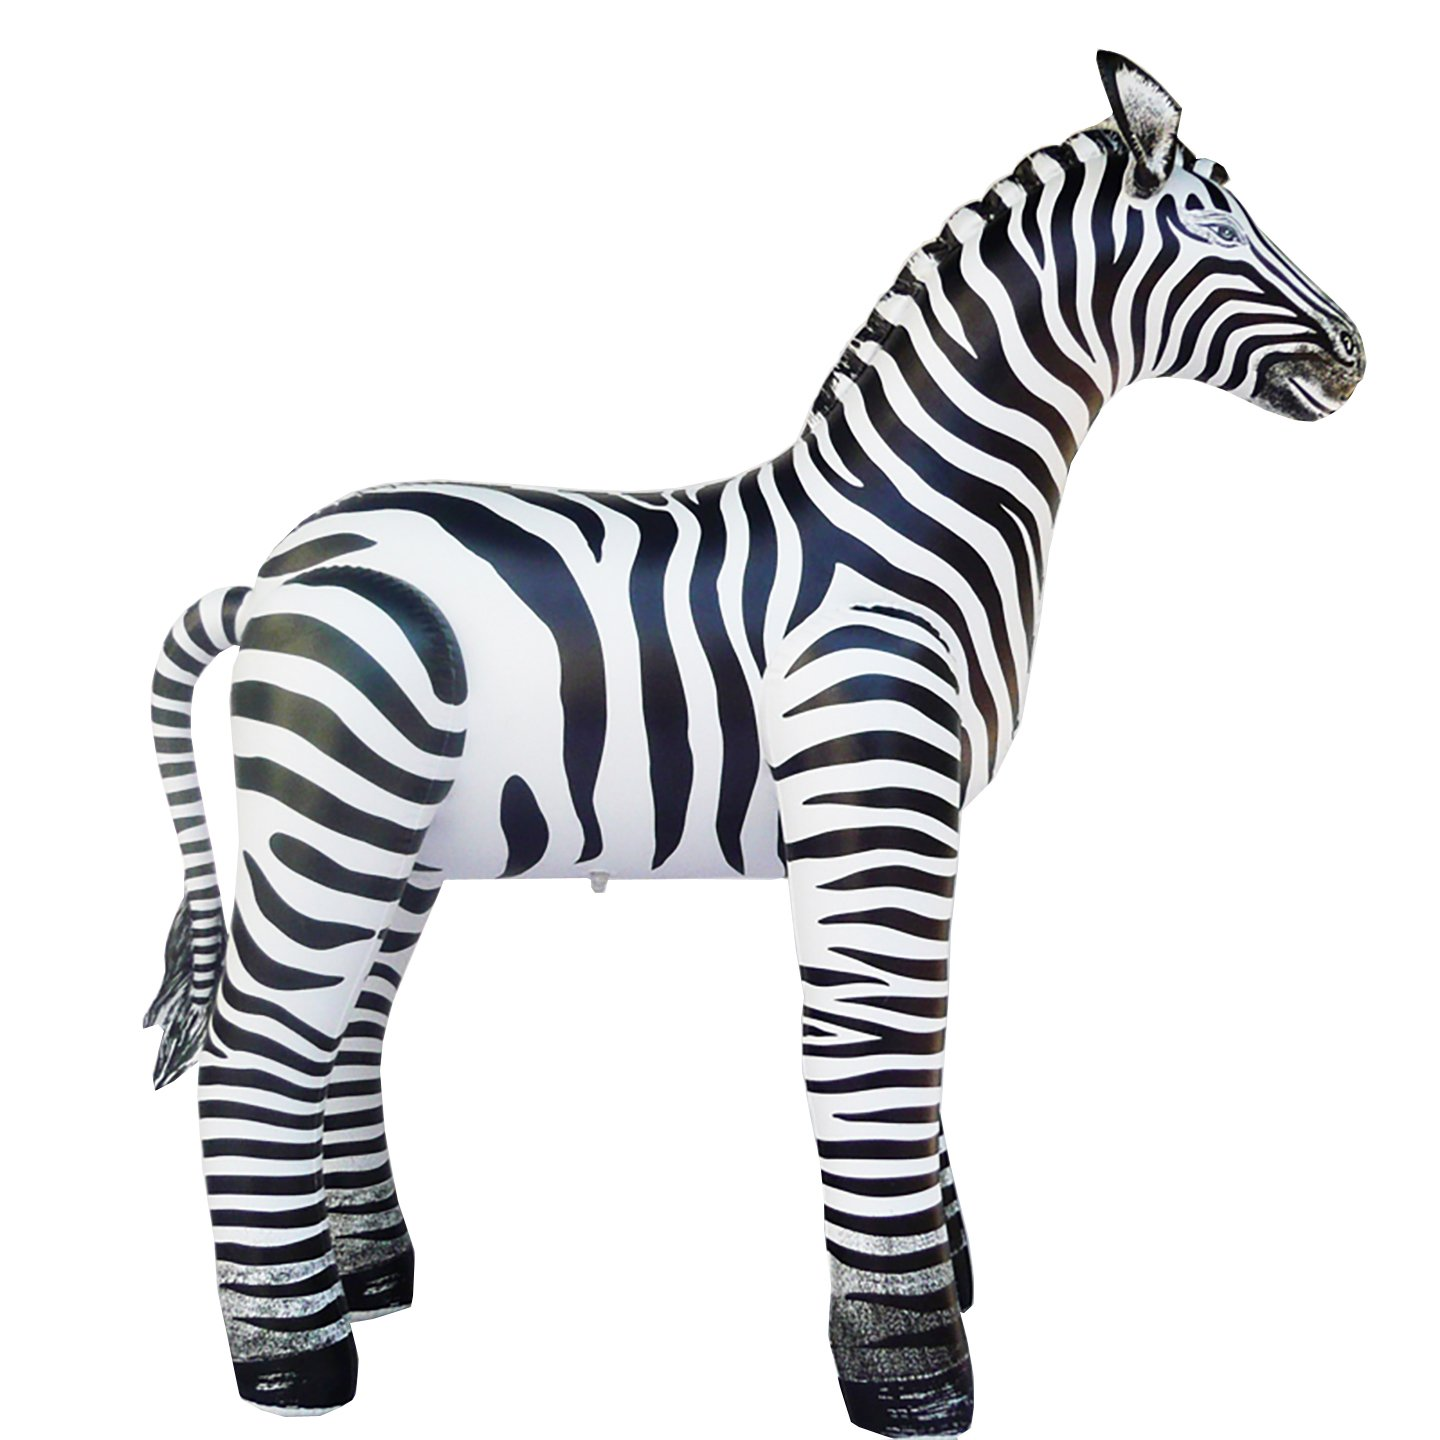 Jet Creations Inflatable Zebra Great For Safari Baby Showers & Zoo Themed Children'S Parties Photo Prop Stuffed Animal 56'' AN-ZEB5 by Jet Creations